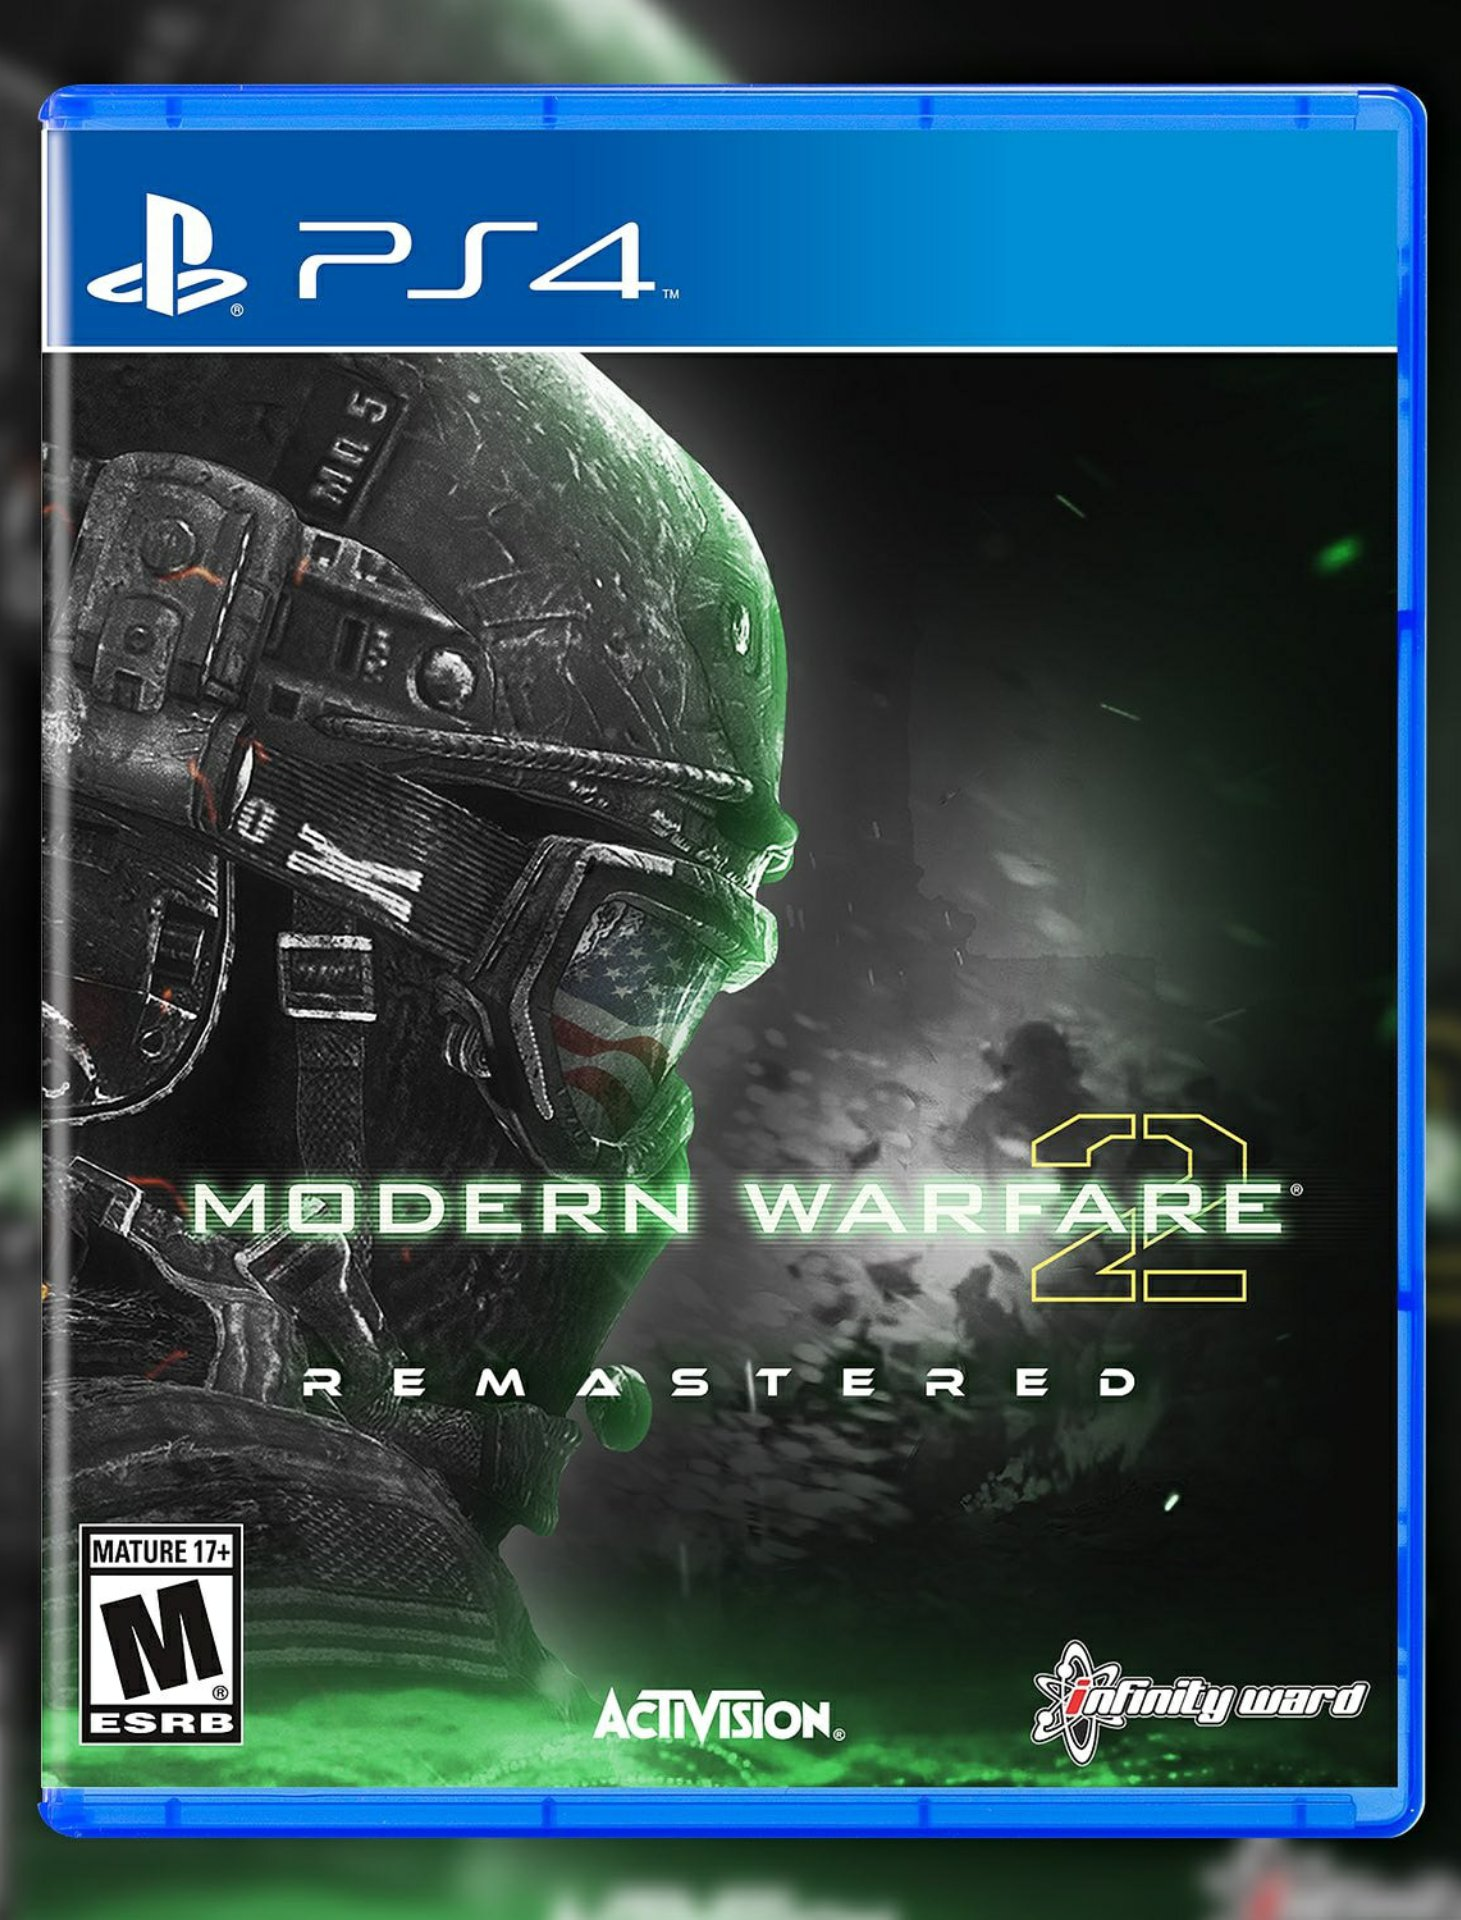 Modern warfare 2 remastered is coming this year - Se7ensins mw2 ...